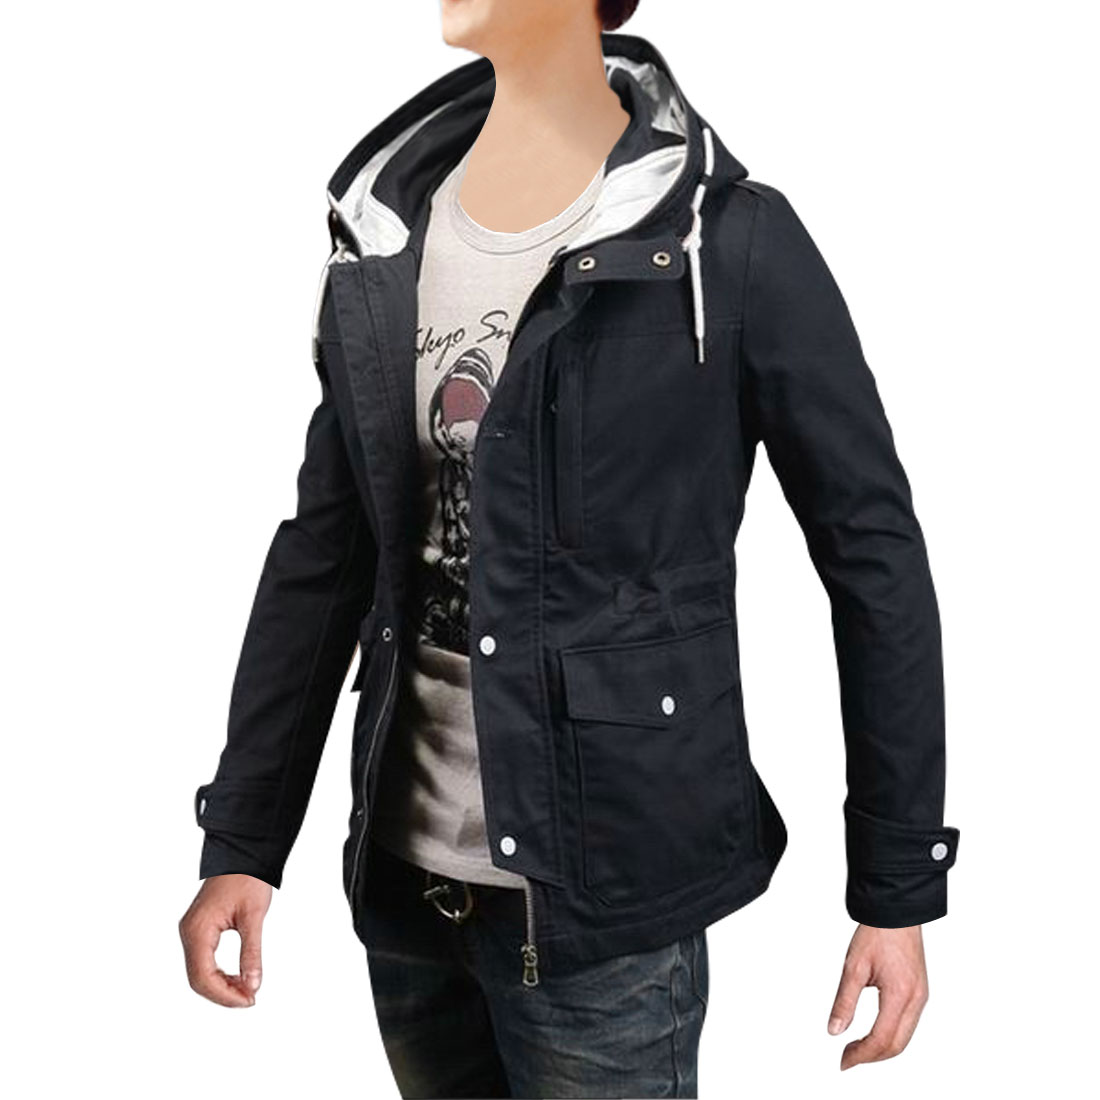 Men Hooded Zip Closure Pockets Front Jacket Navy Blue M